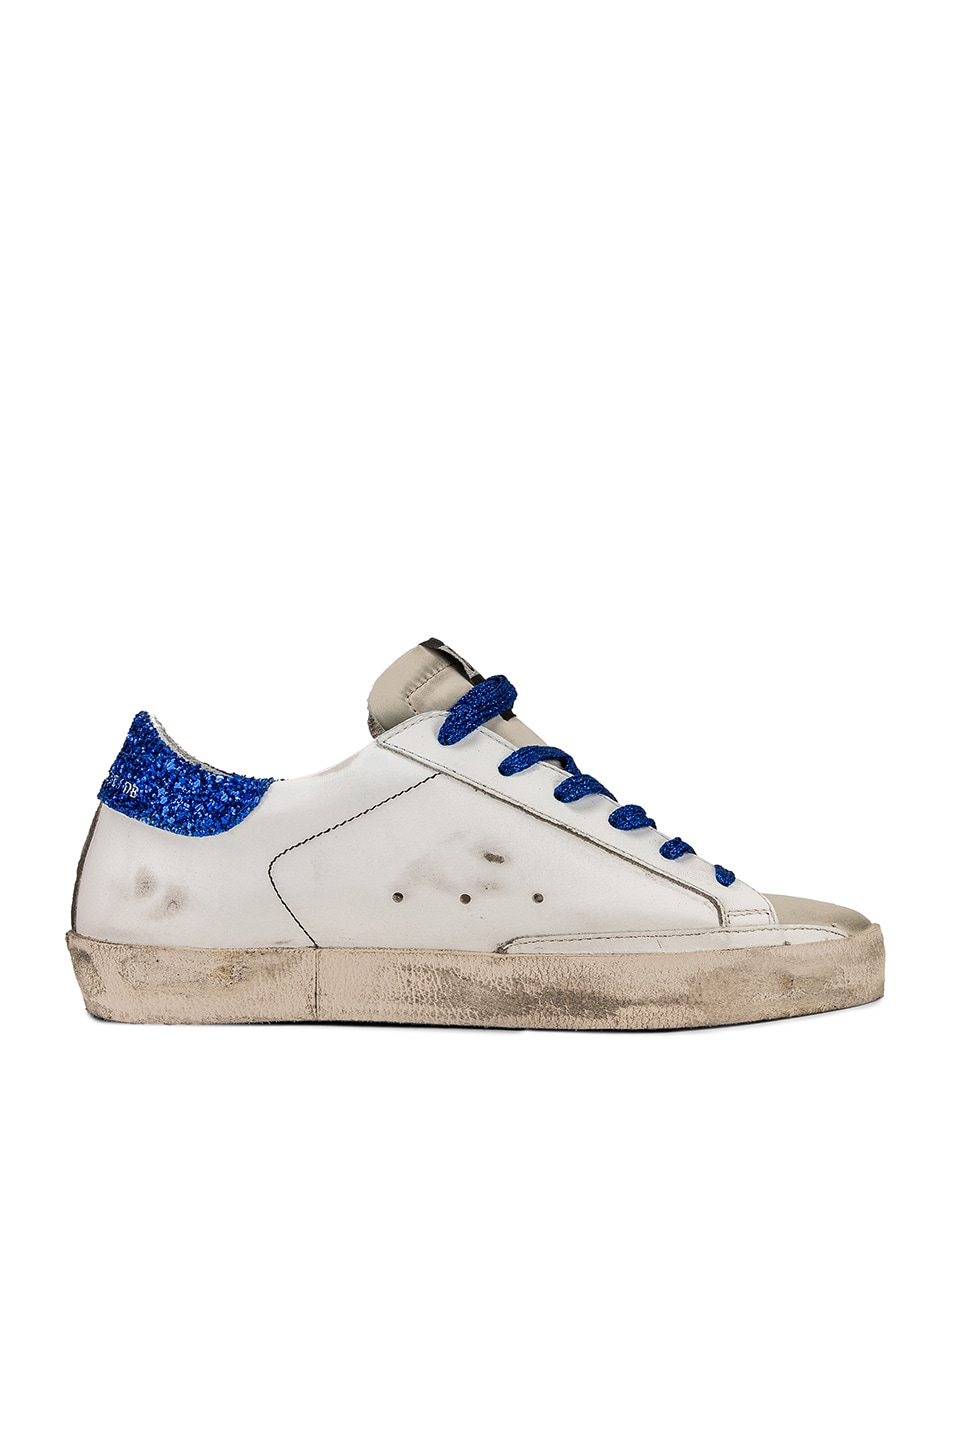 Image 7 of Golden Goose Bluette Laces Superstar Sneakers in White American Flag